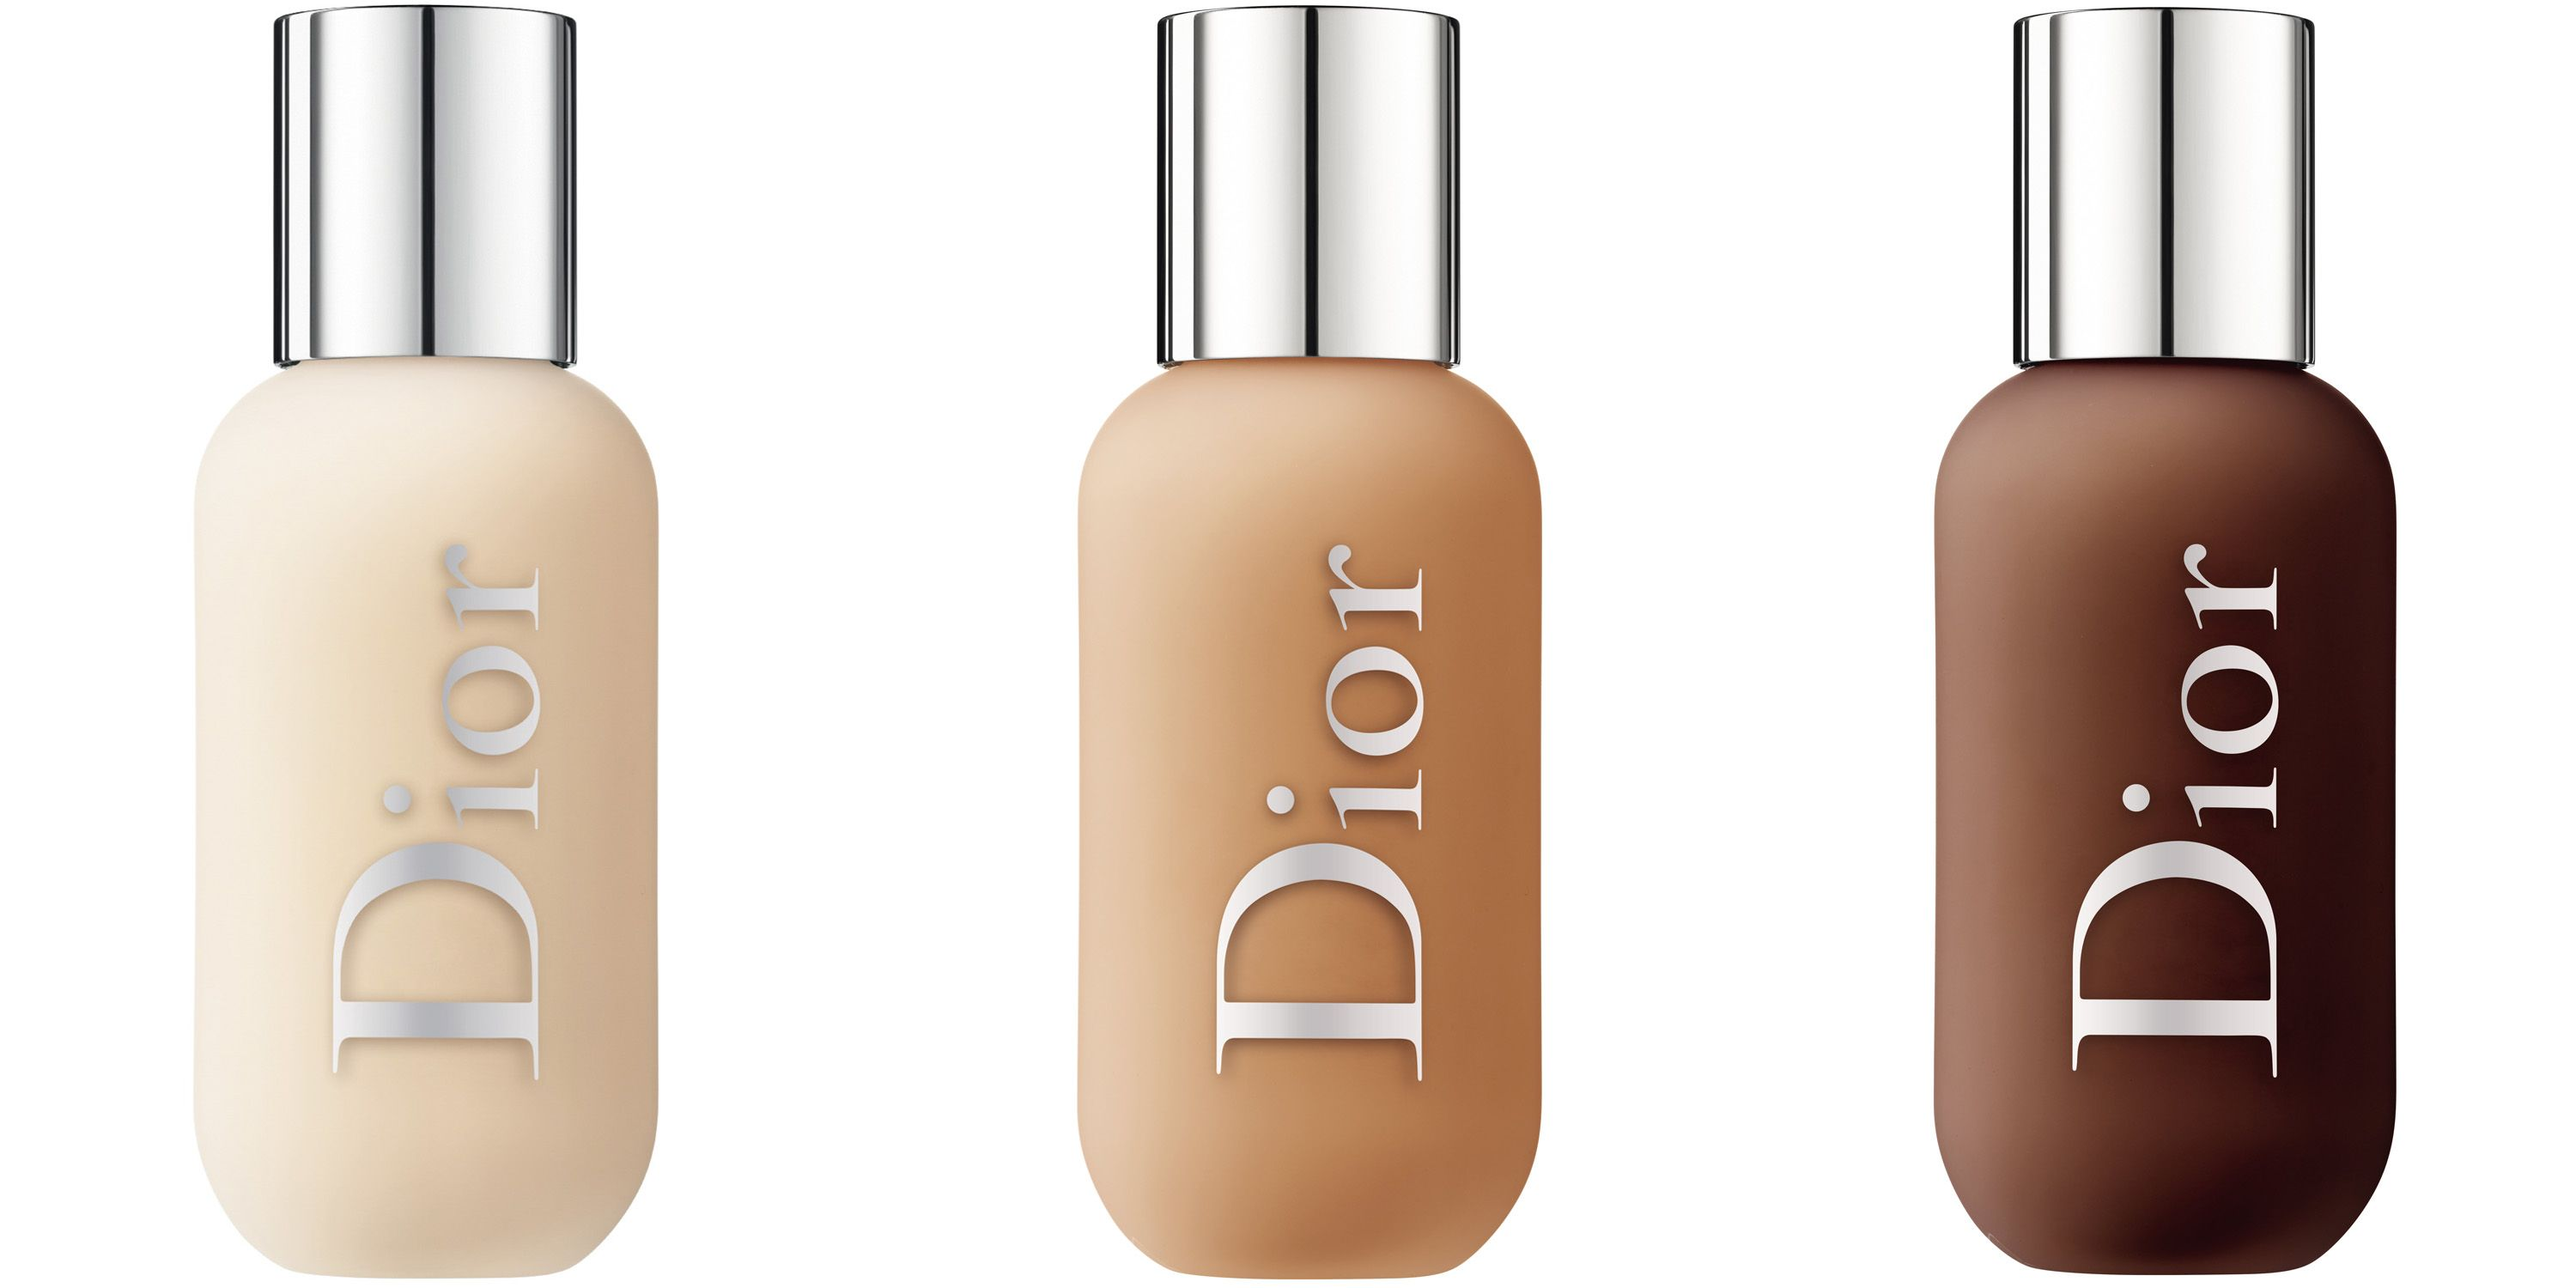 Dior Launched A Less-Expensive Beauty Line Called Backstage—We Have All the Details